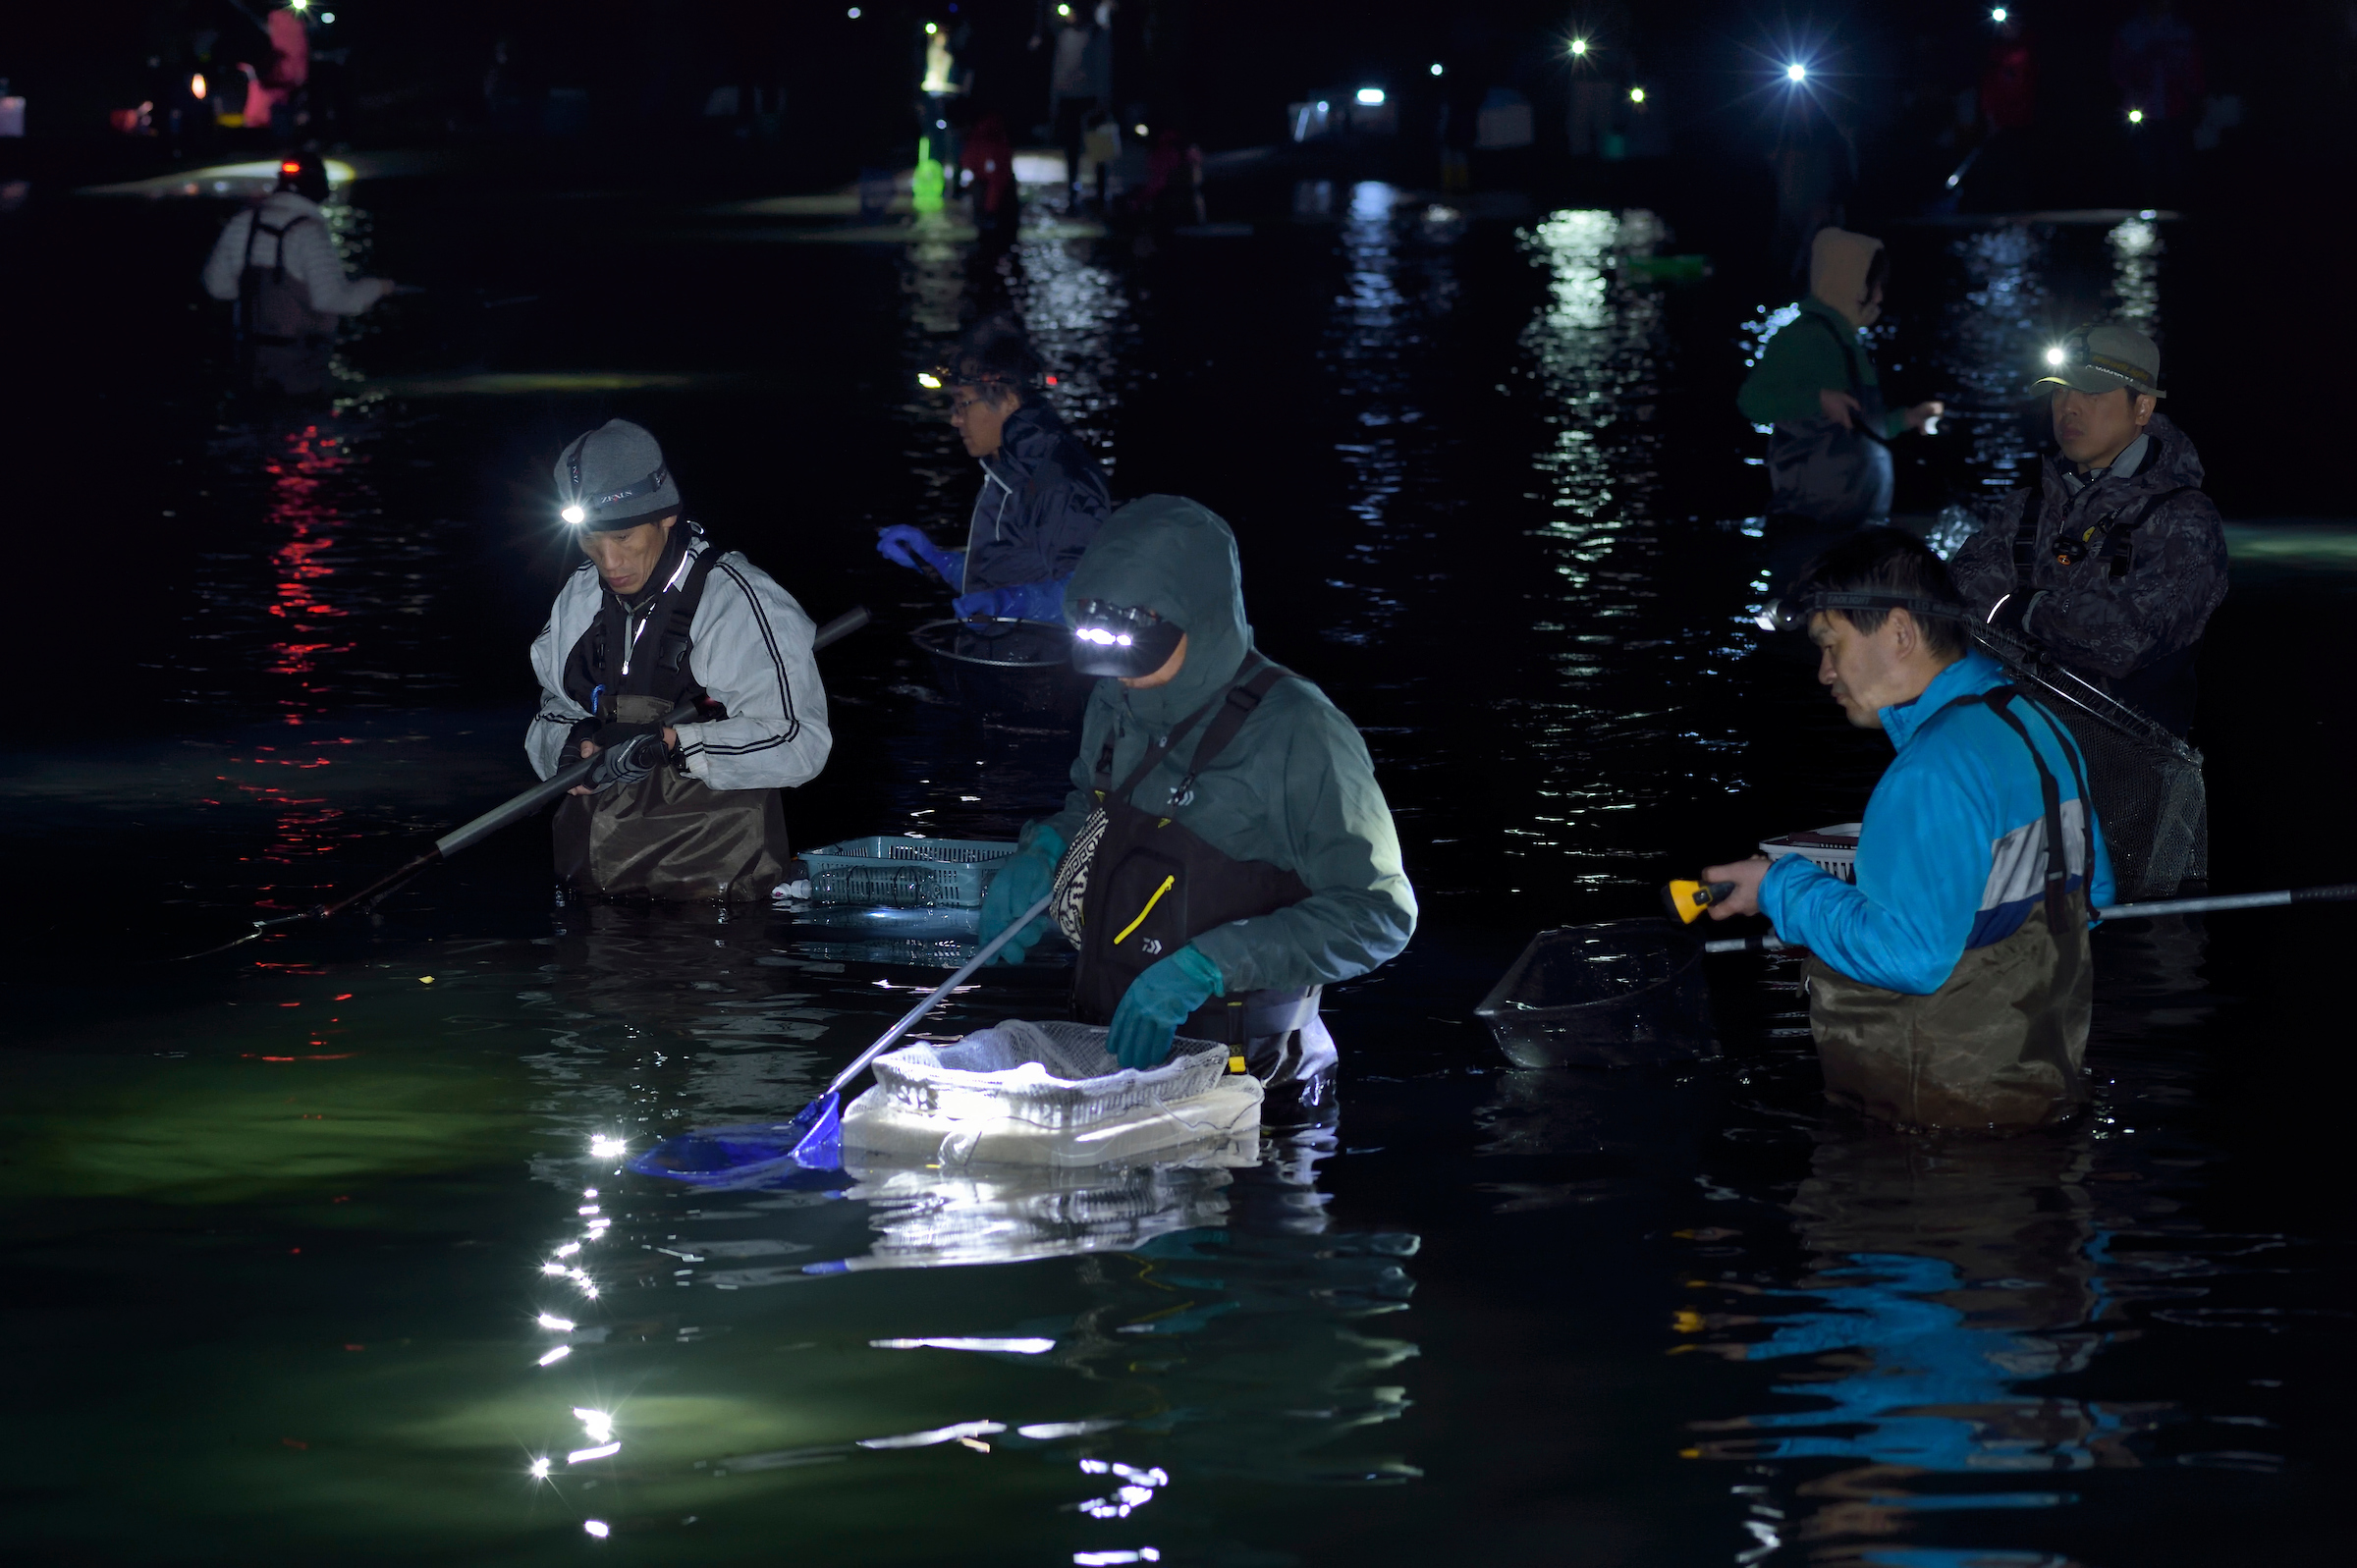 Local fishers use nets and buckets to scoop spawning firefly squid from the shallows of Japan's Toyama Bay.